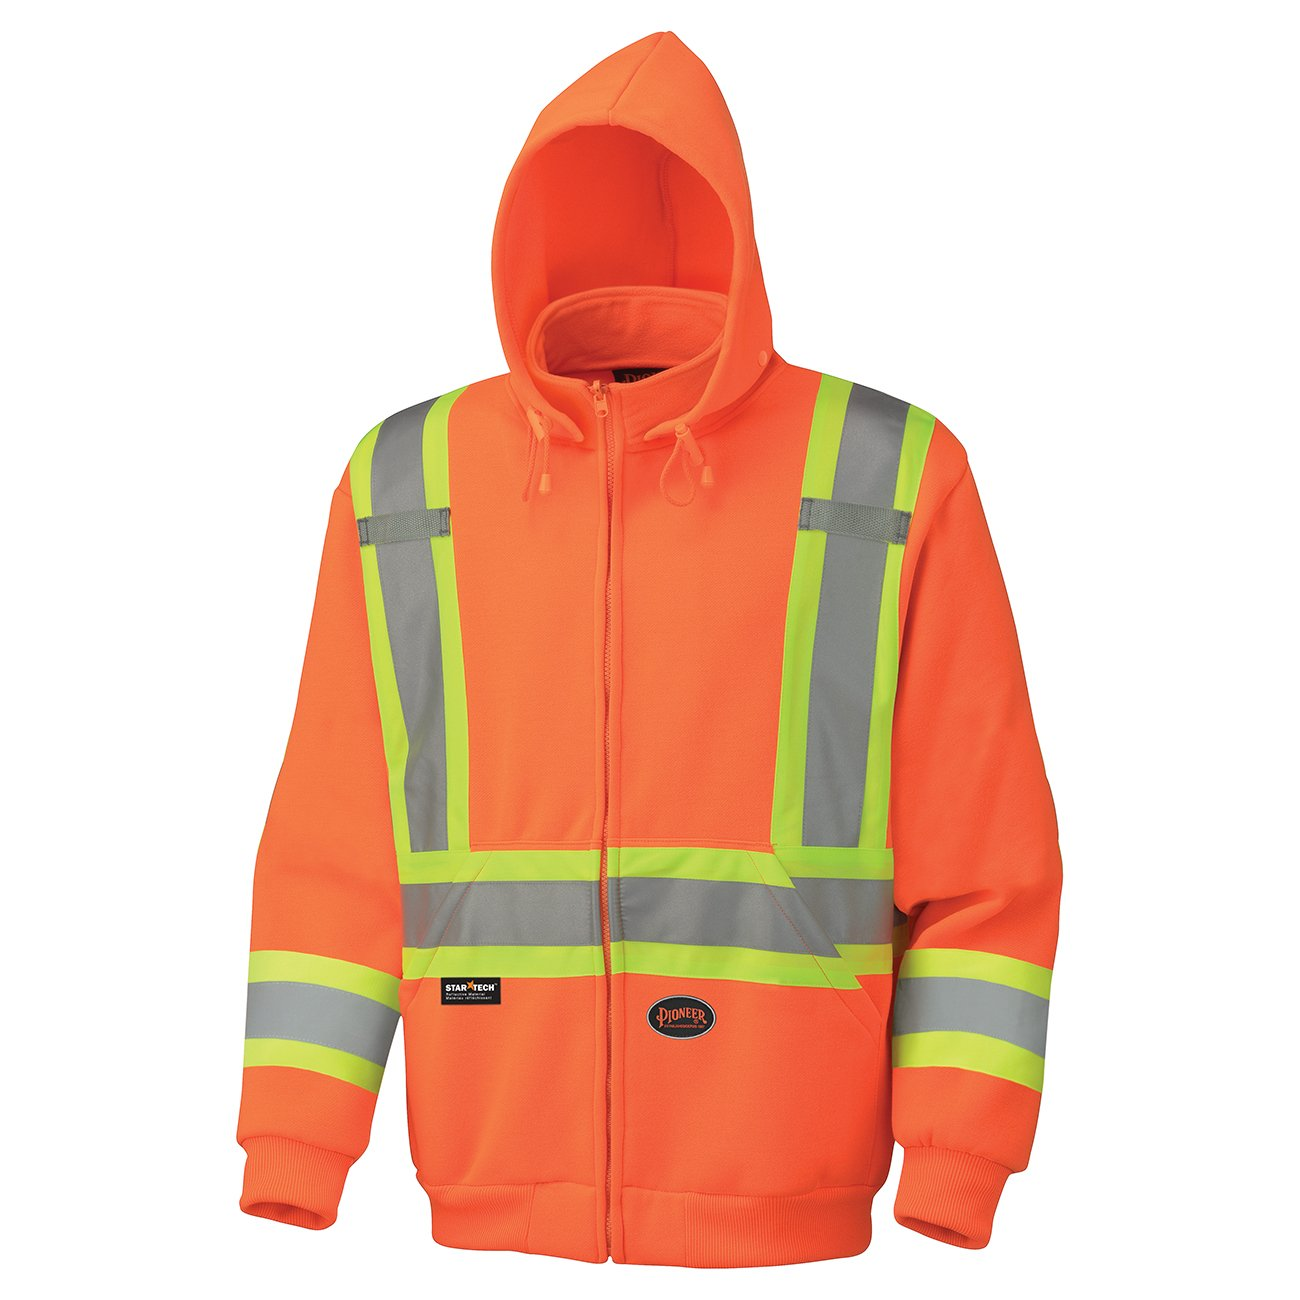 Pioneer V1060350-4XL High Visibility Safety Hoodie, Polyester Fleece, Orange, 4XL